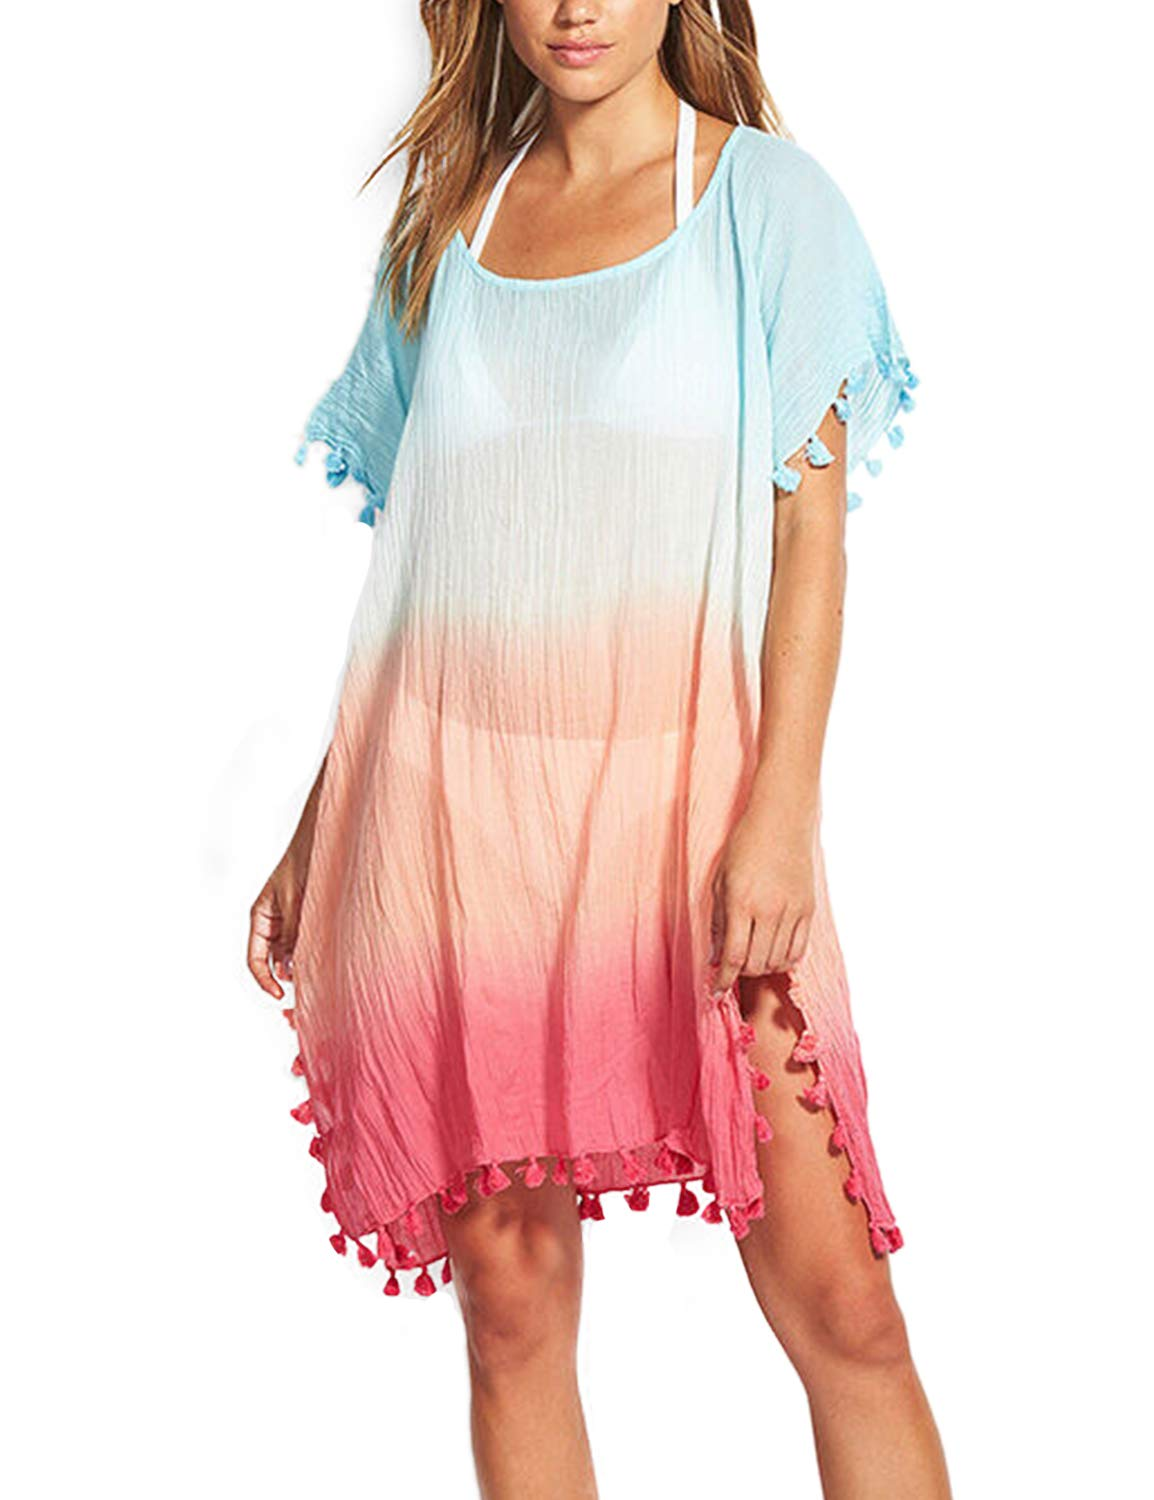 Women's Round Neck Top Chiffon Pullovers Sexy Short Sleeve Split Tie Dye Cover Ups